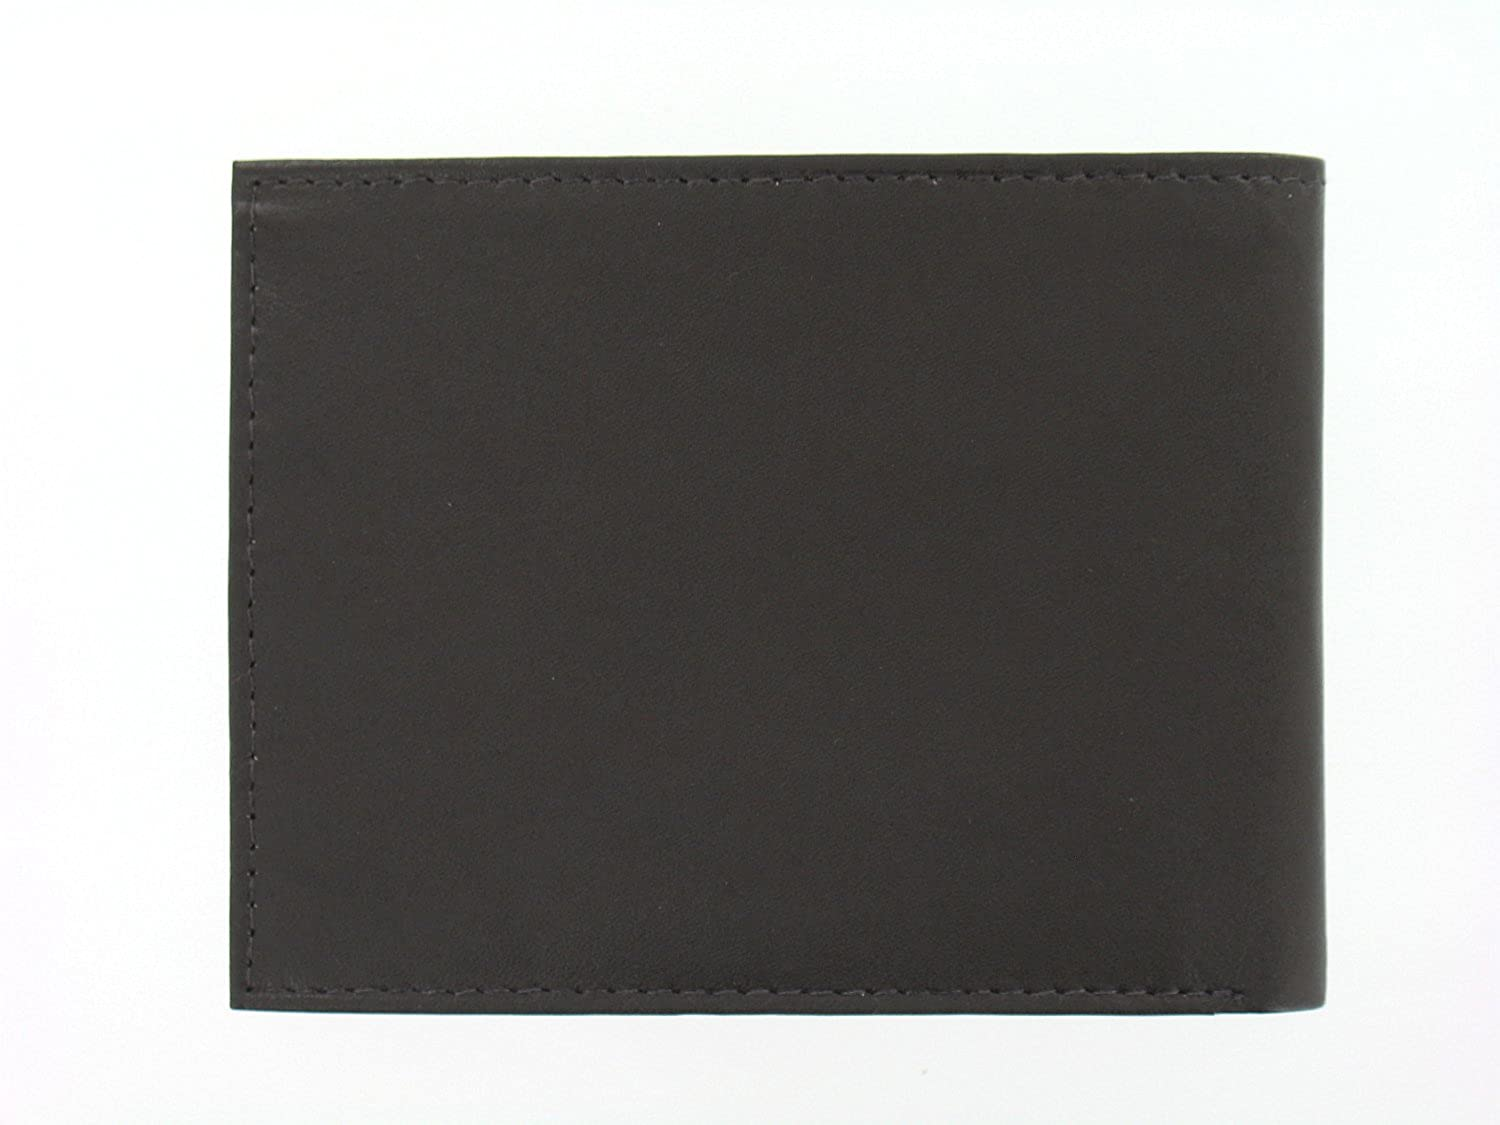 db0fa1475f40 Michael Kors Brown Leather Passcase Wallet at Amazon Men s Clothing store